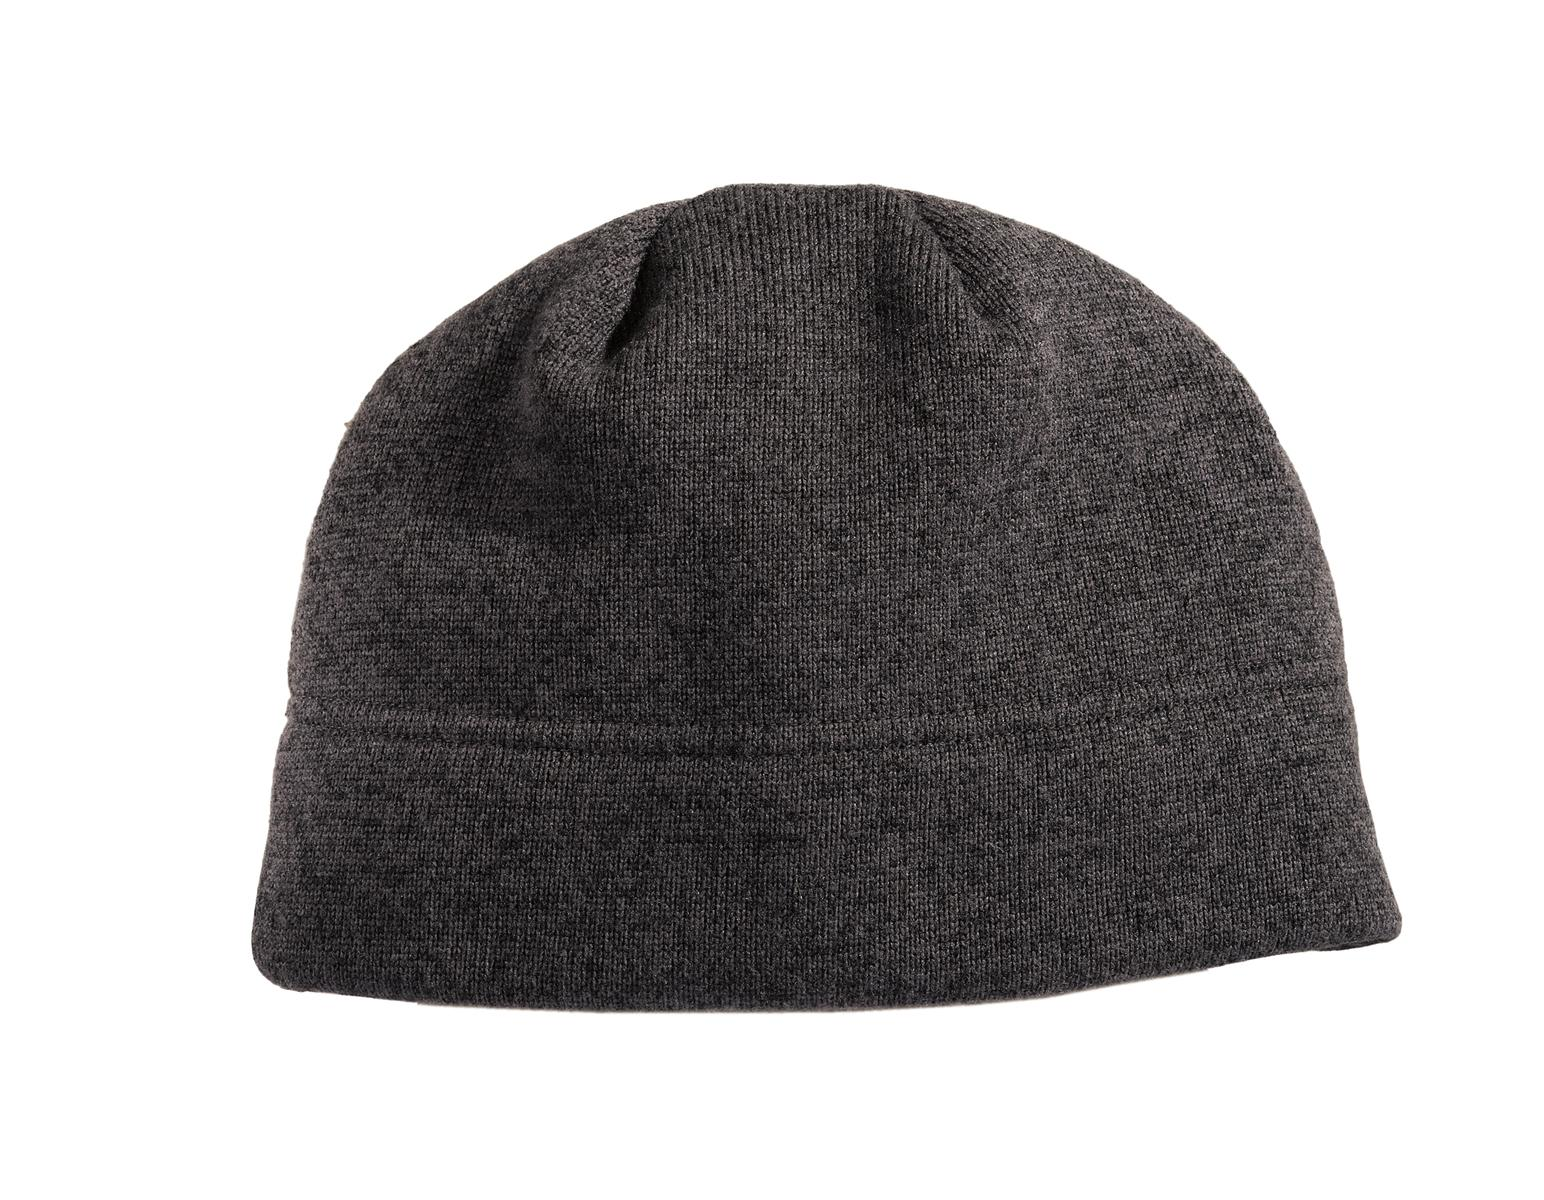 Port Authority ®  Heathered Knit Beanie. C917 - Black Heather/ Charcoal